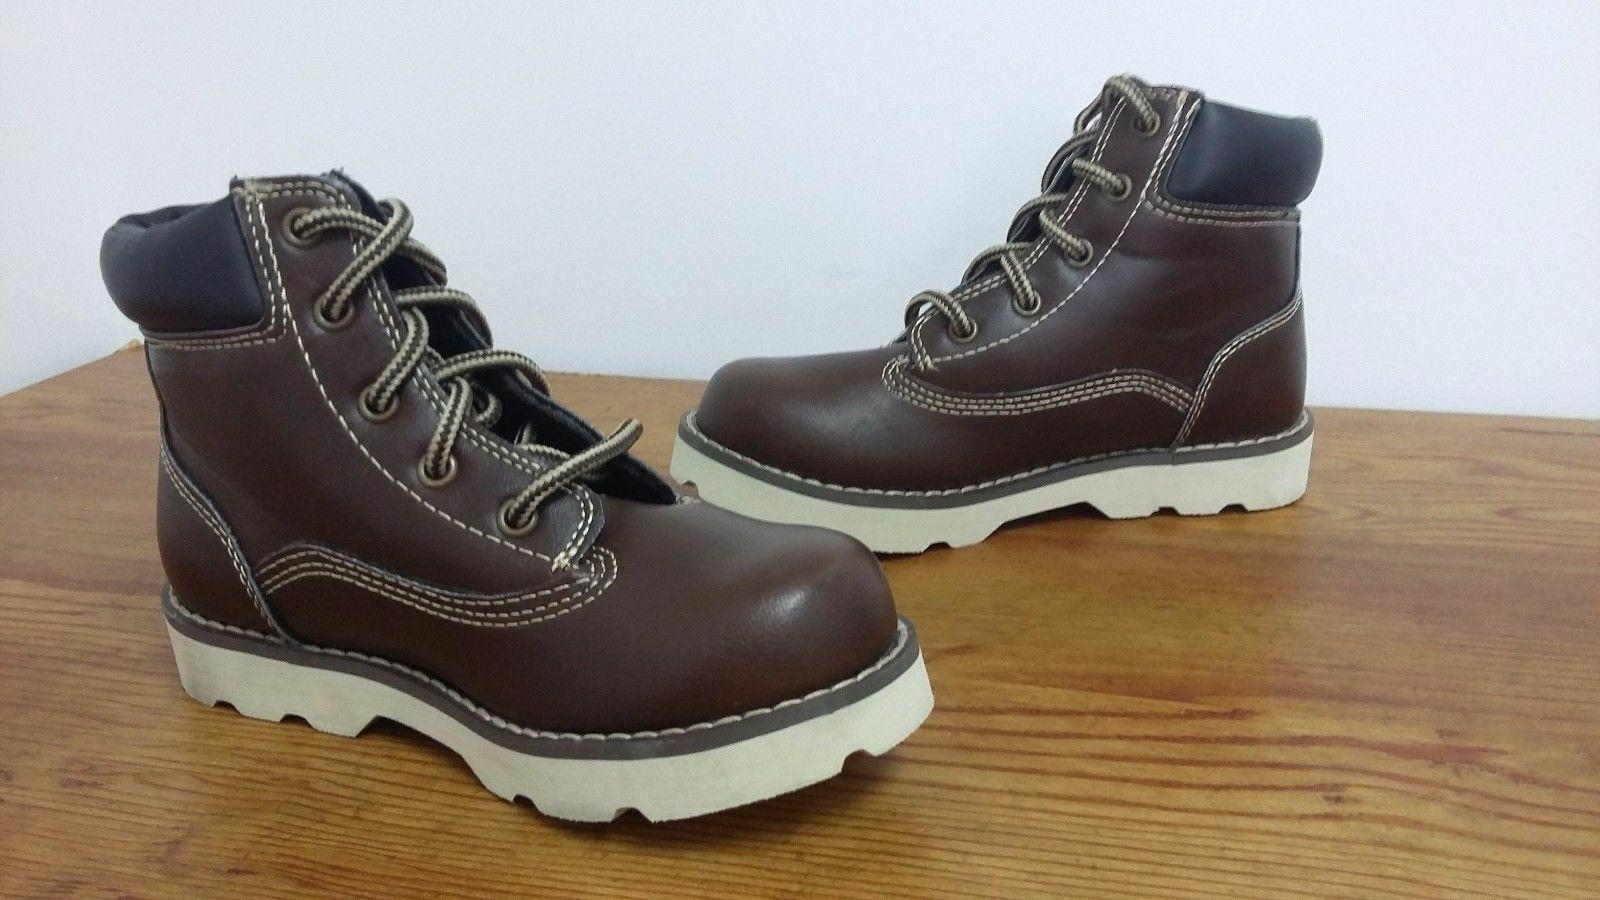 New!! Skechers Boys Youth 93633L Bowland Brown Ankle Boots J